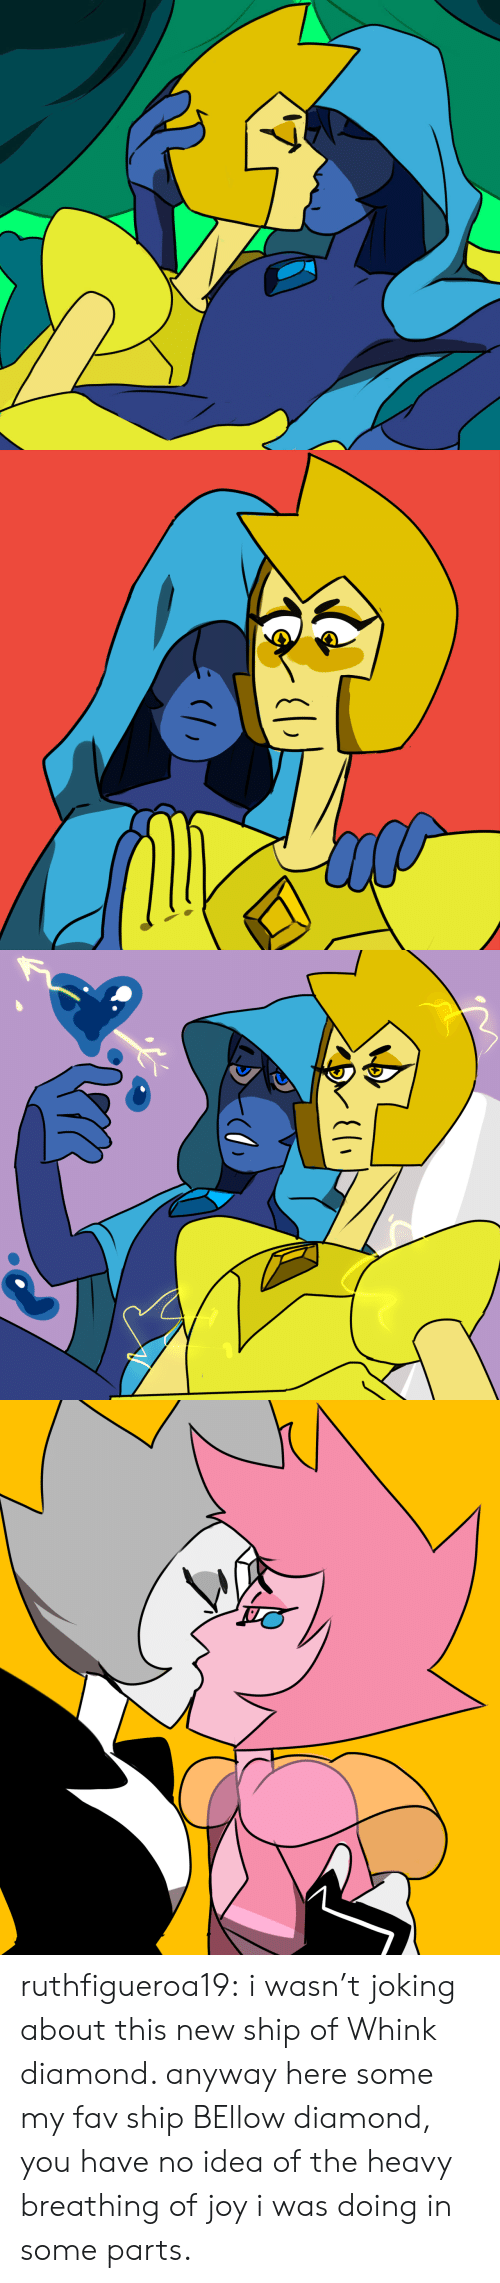 Tumblr, Blog, and Diamond: ( ruthfigueroa19:  i wasn't joking about this new ship of Whink diamond. anyway here some my fav ship BEllow diamond, you have no idea of the heavy breathing of joy i was doing in some parts.